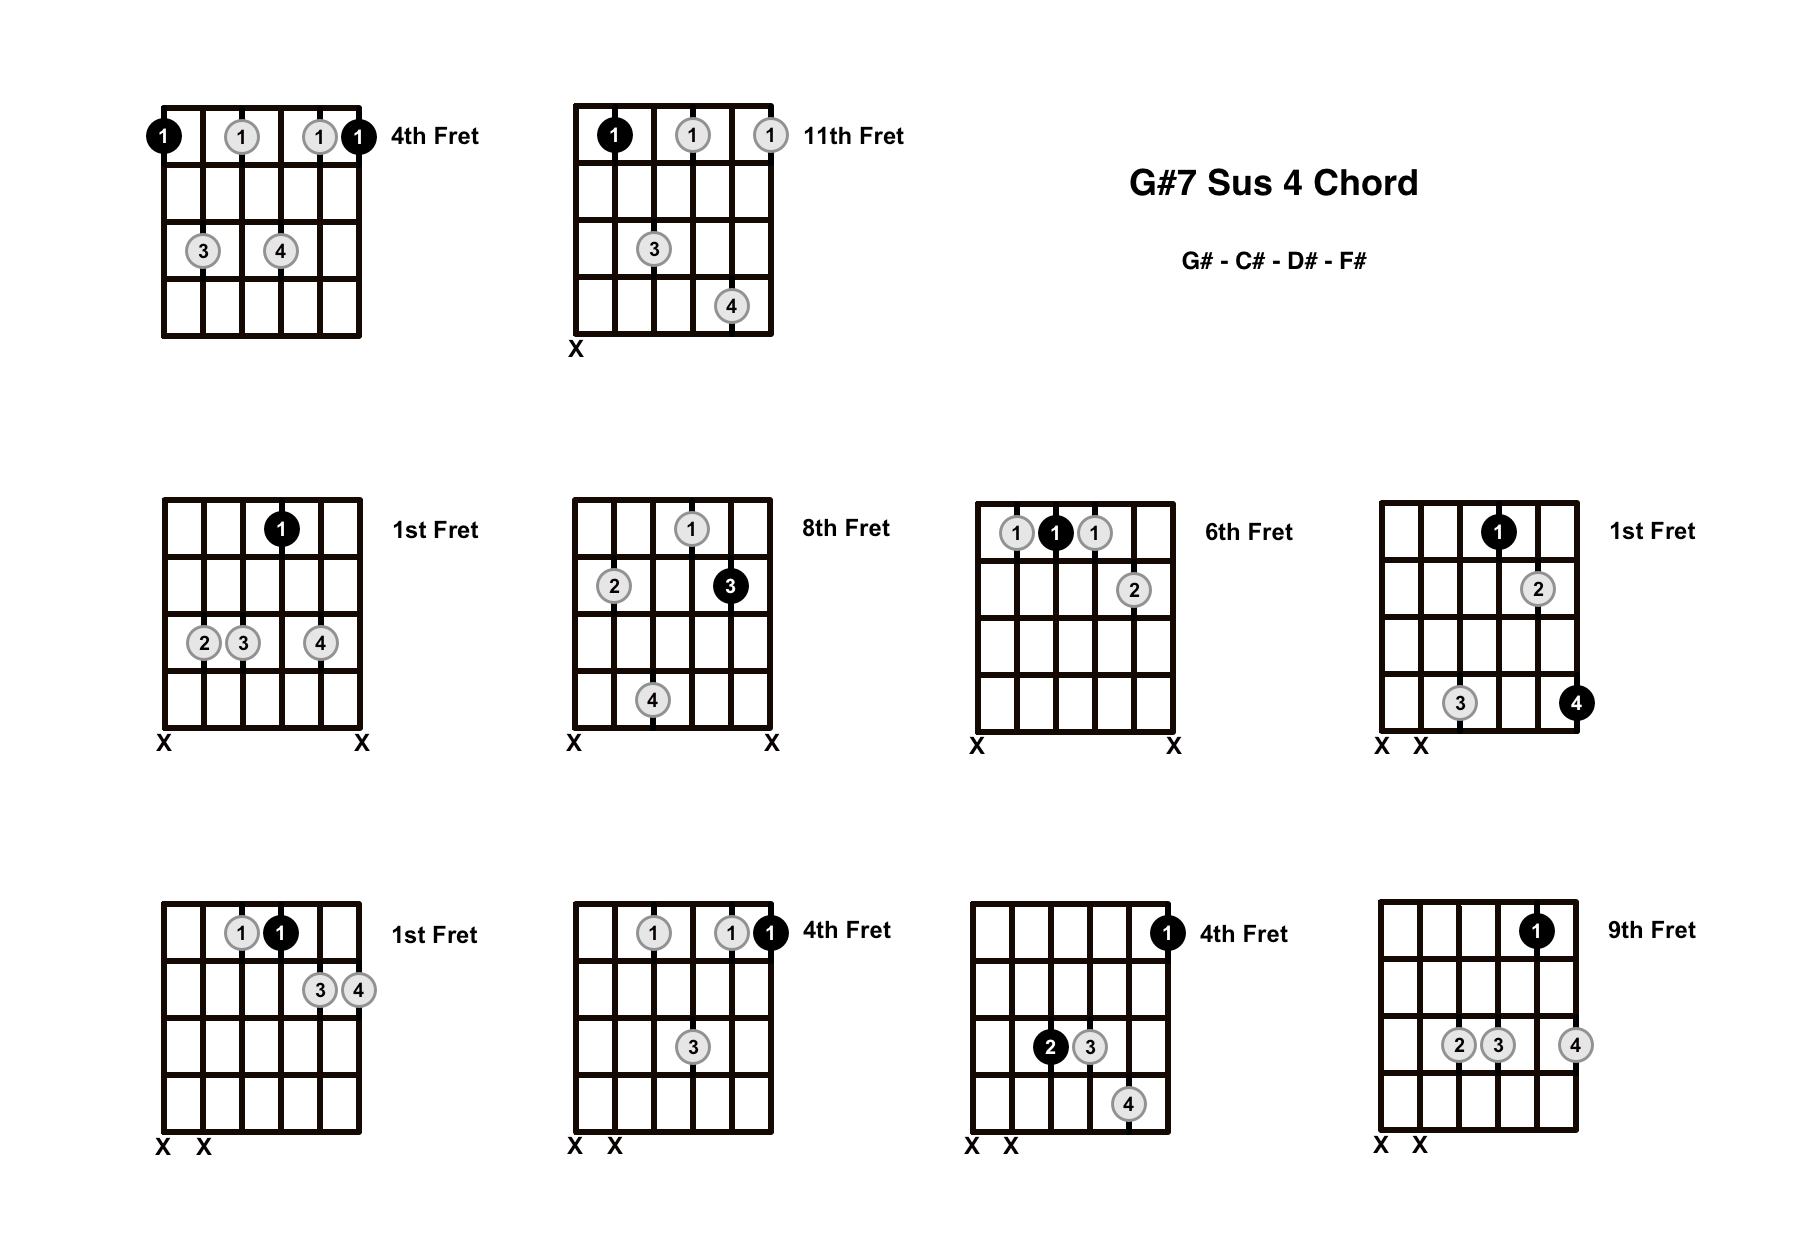 G#7 Sus 4 Chord On The Guitar (G Sharp 7 Suspended 4) – Diagrams, Finger Positions and Theory